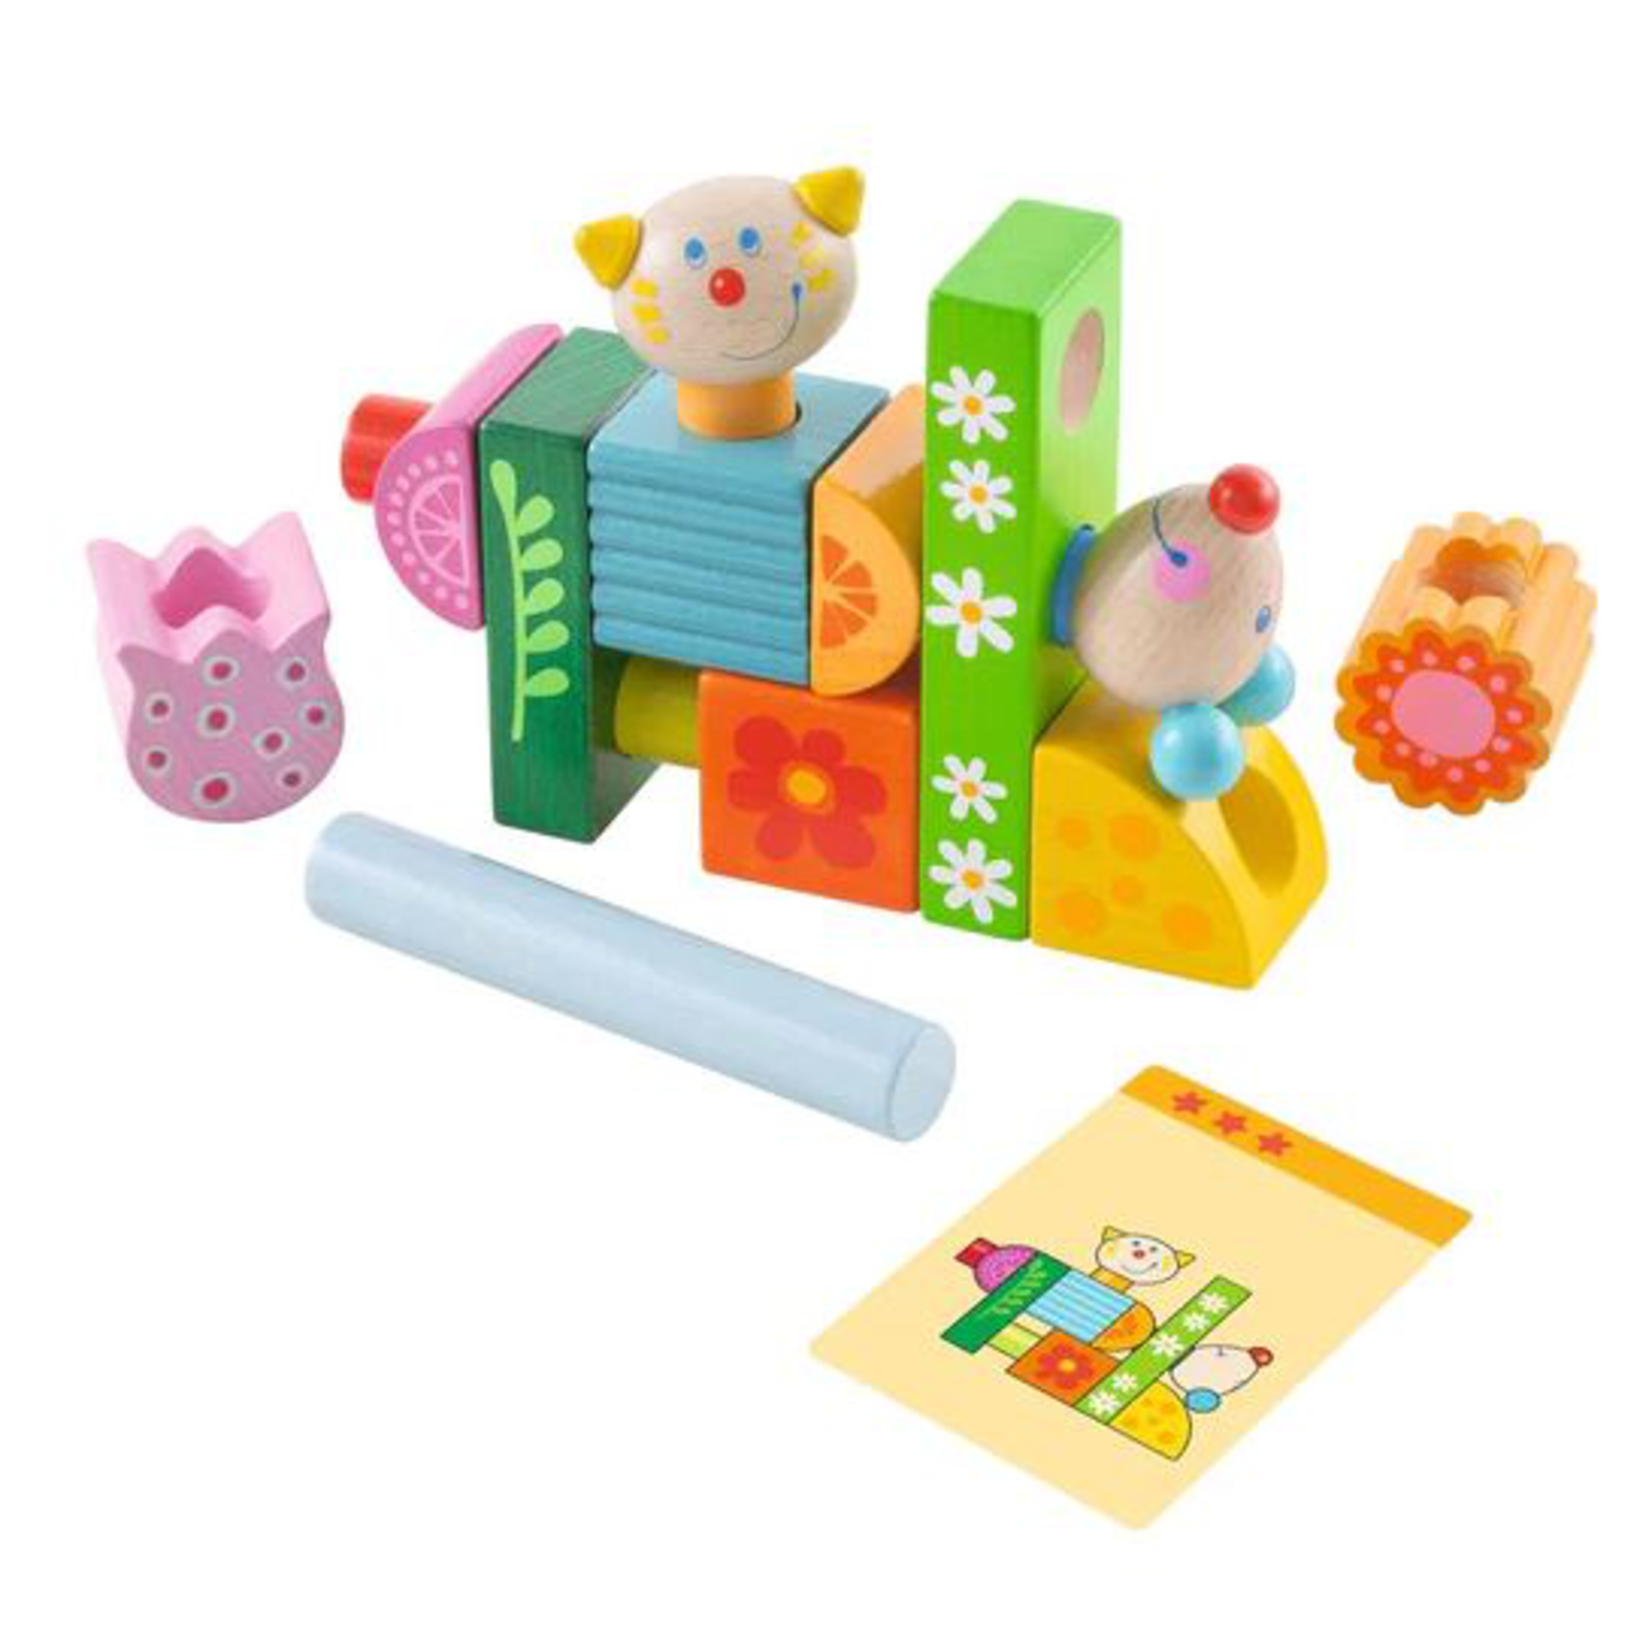 Haba Brain Builder: Cat & Mouse